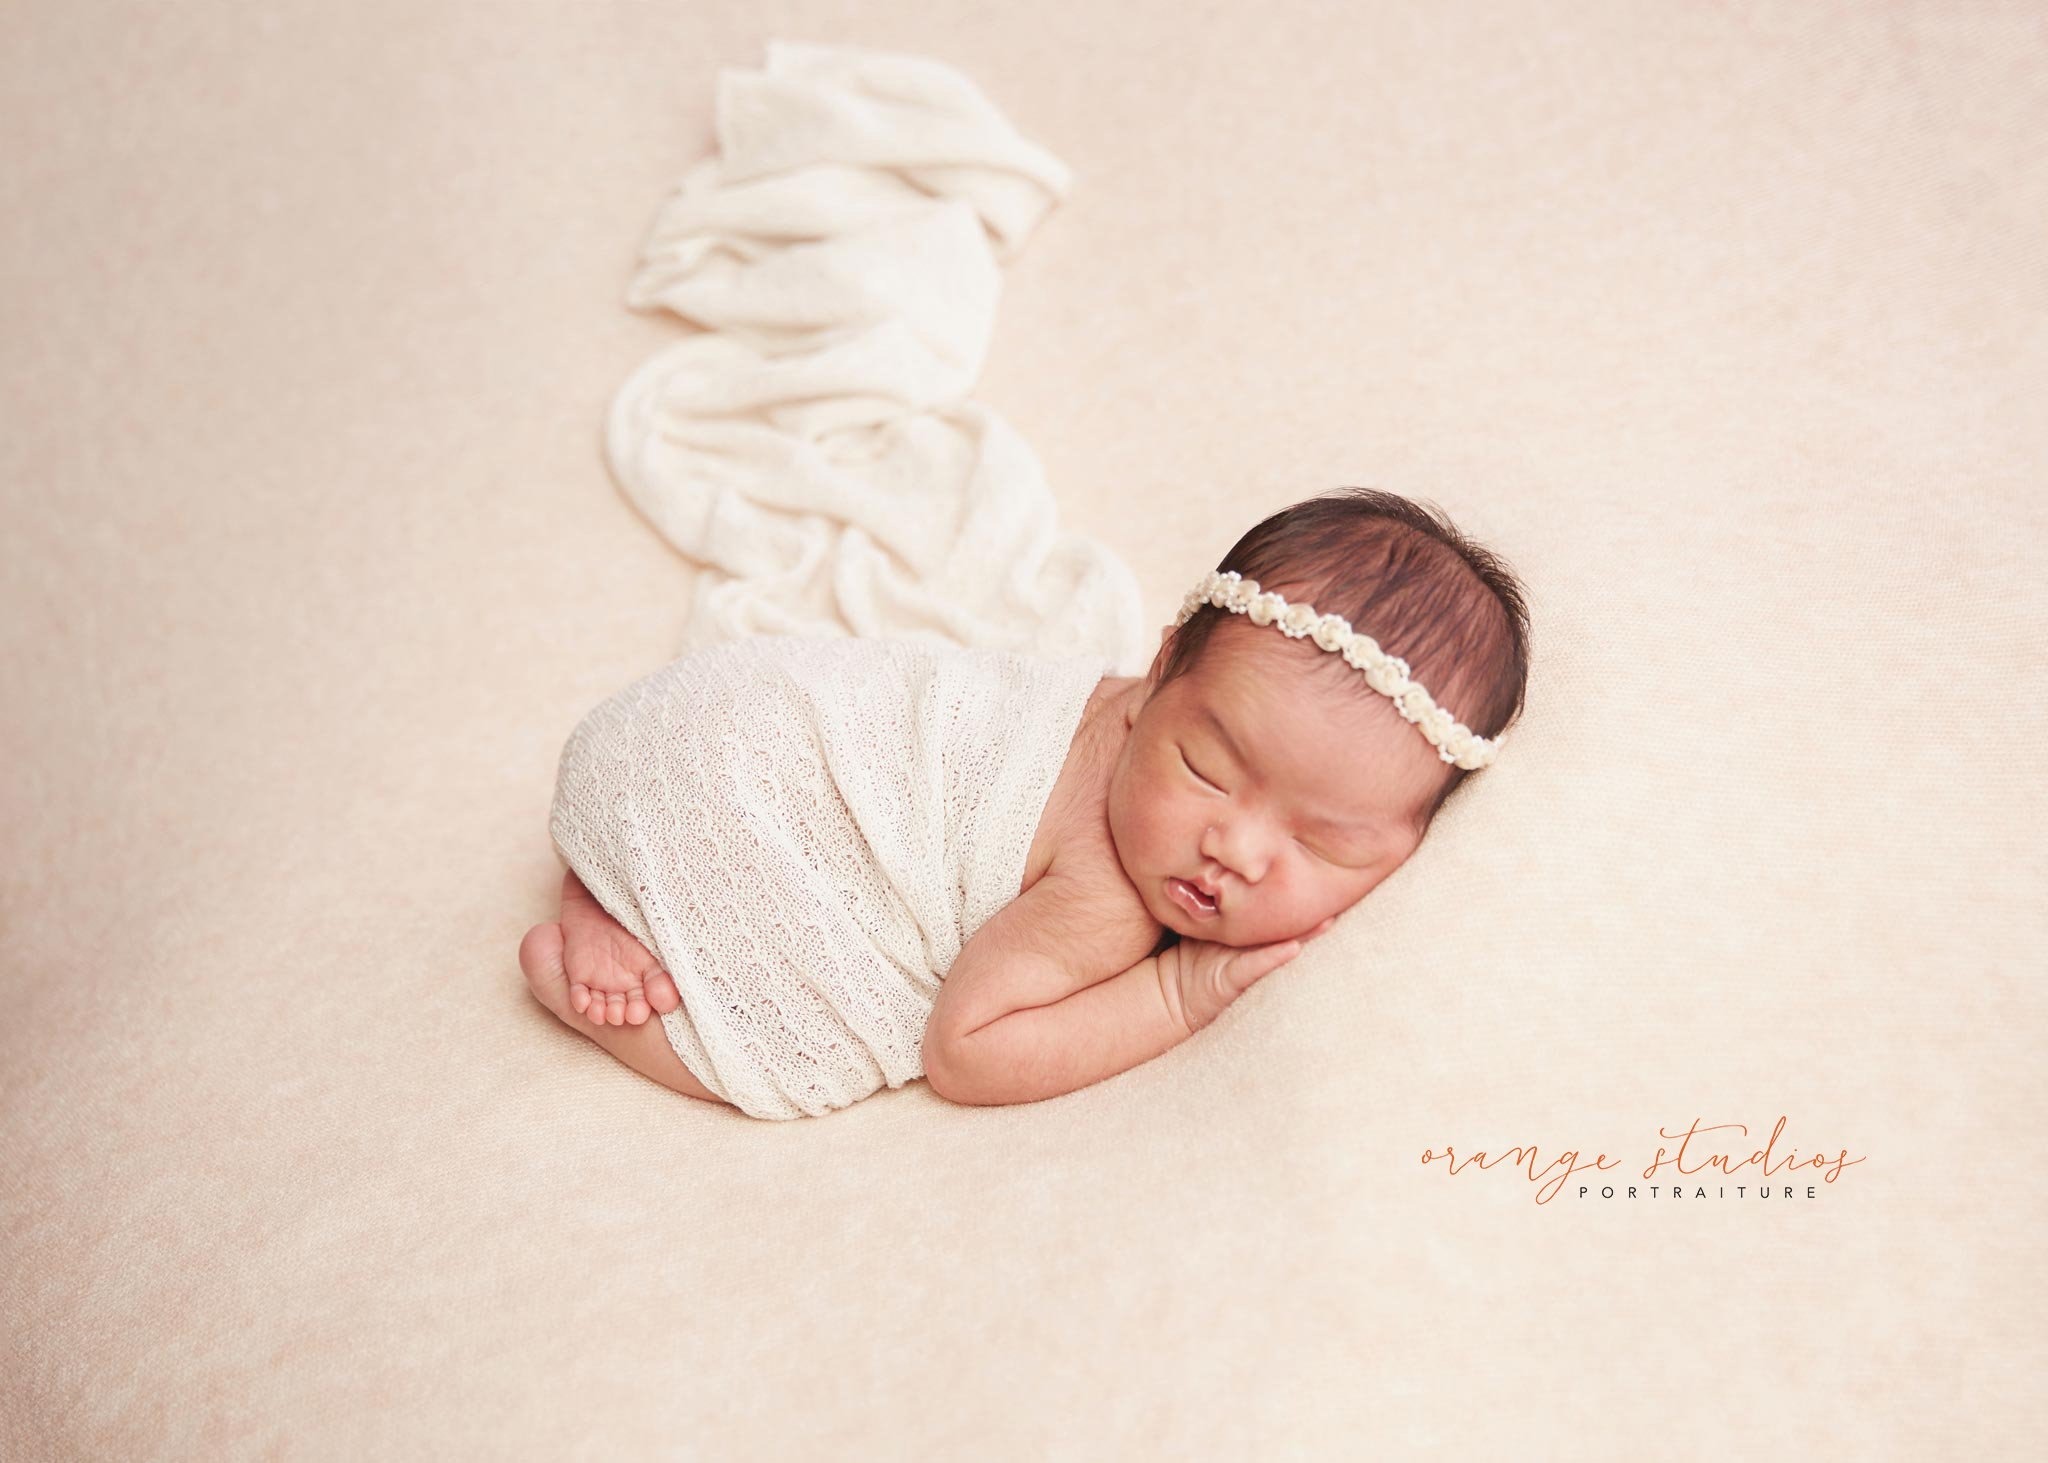 Sweet baby riley newborn photography